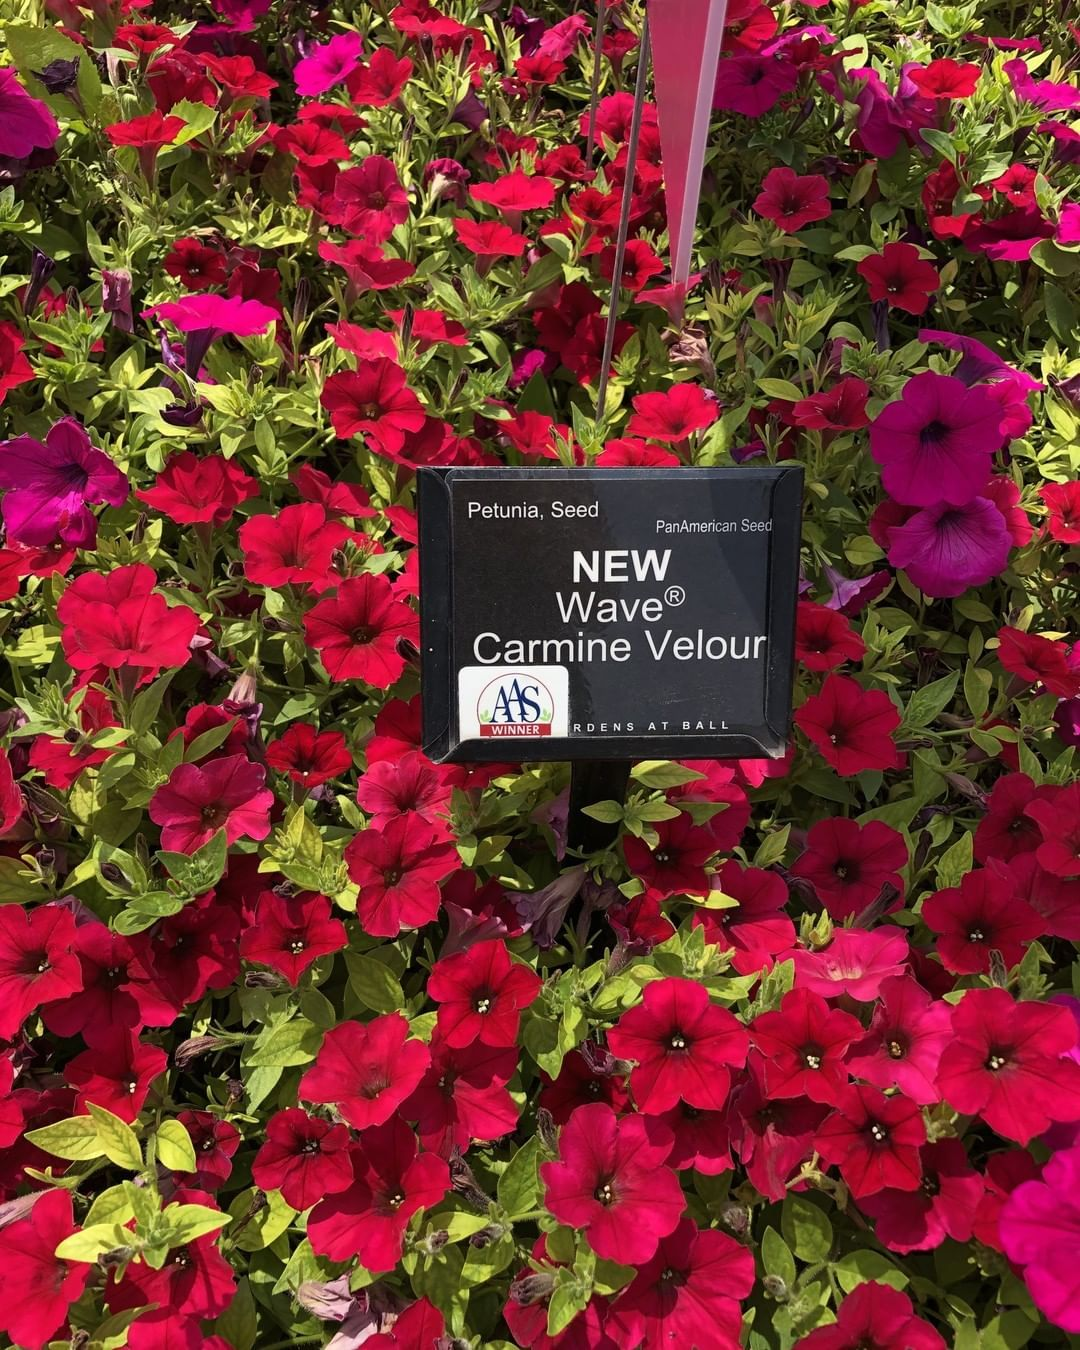 Nationalgarden Posted To Instagram This Newest Color Of The